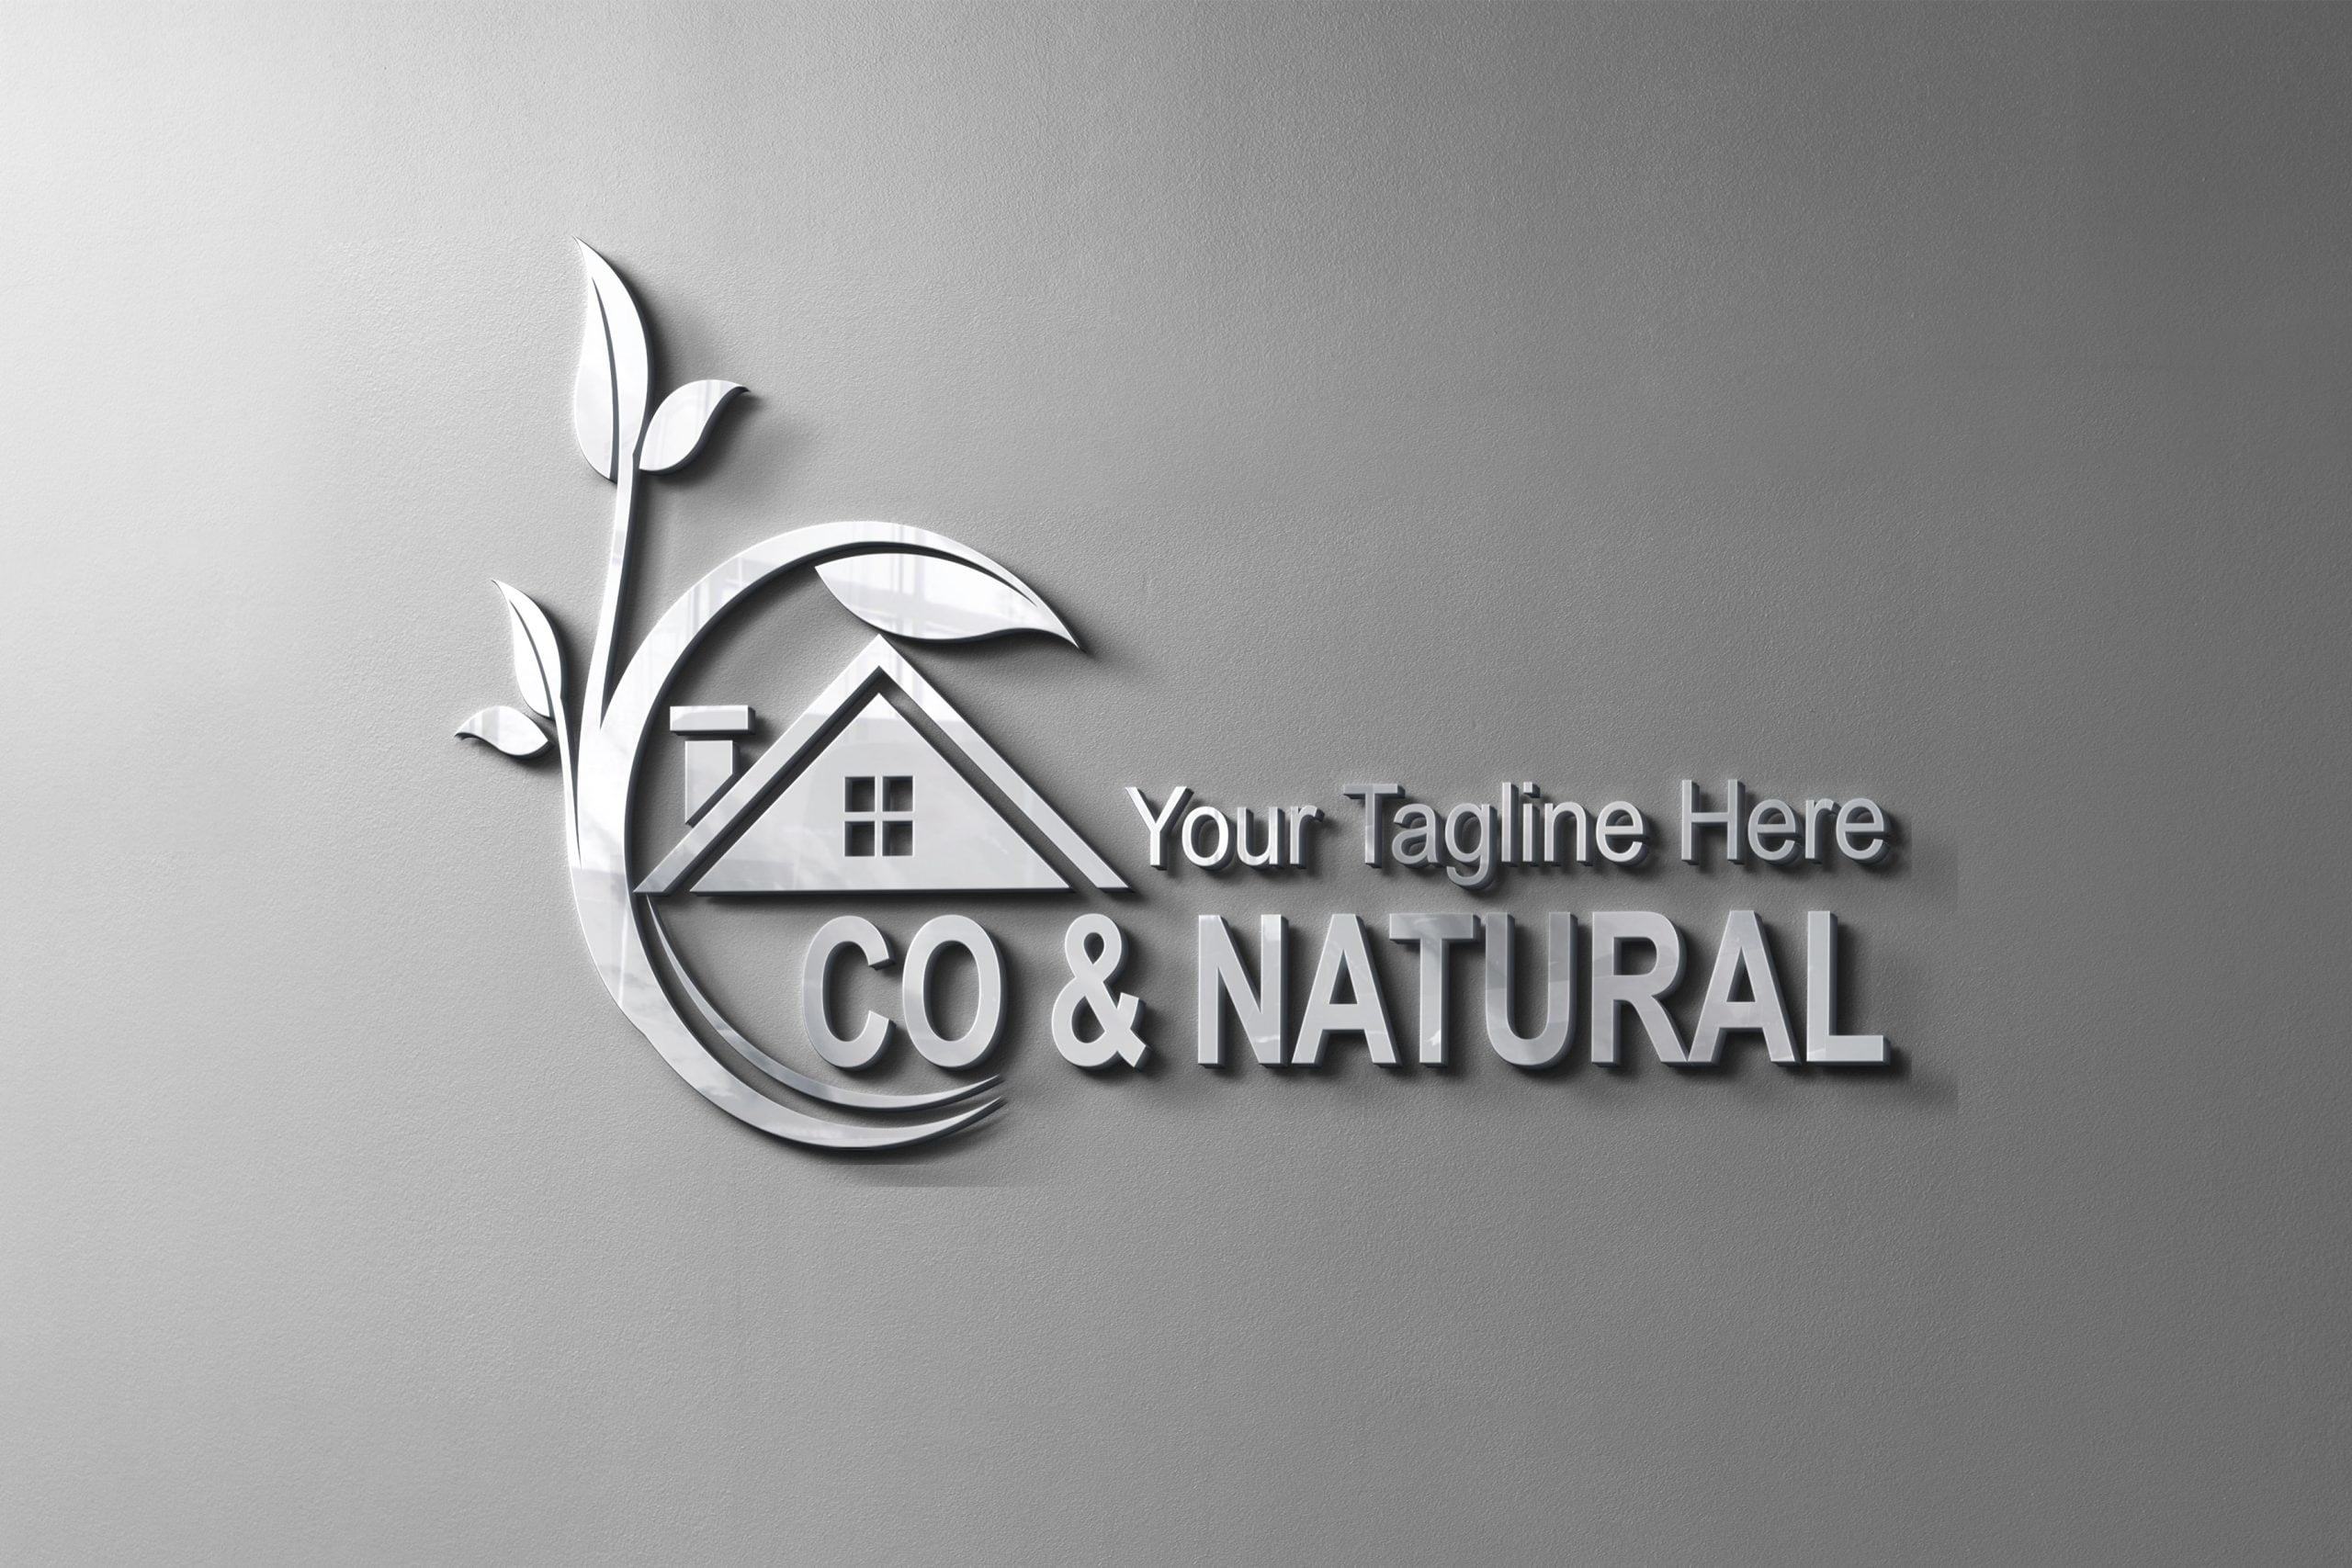 Eco & nature house logo design template on silver metal mockup